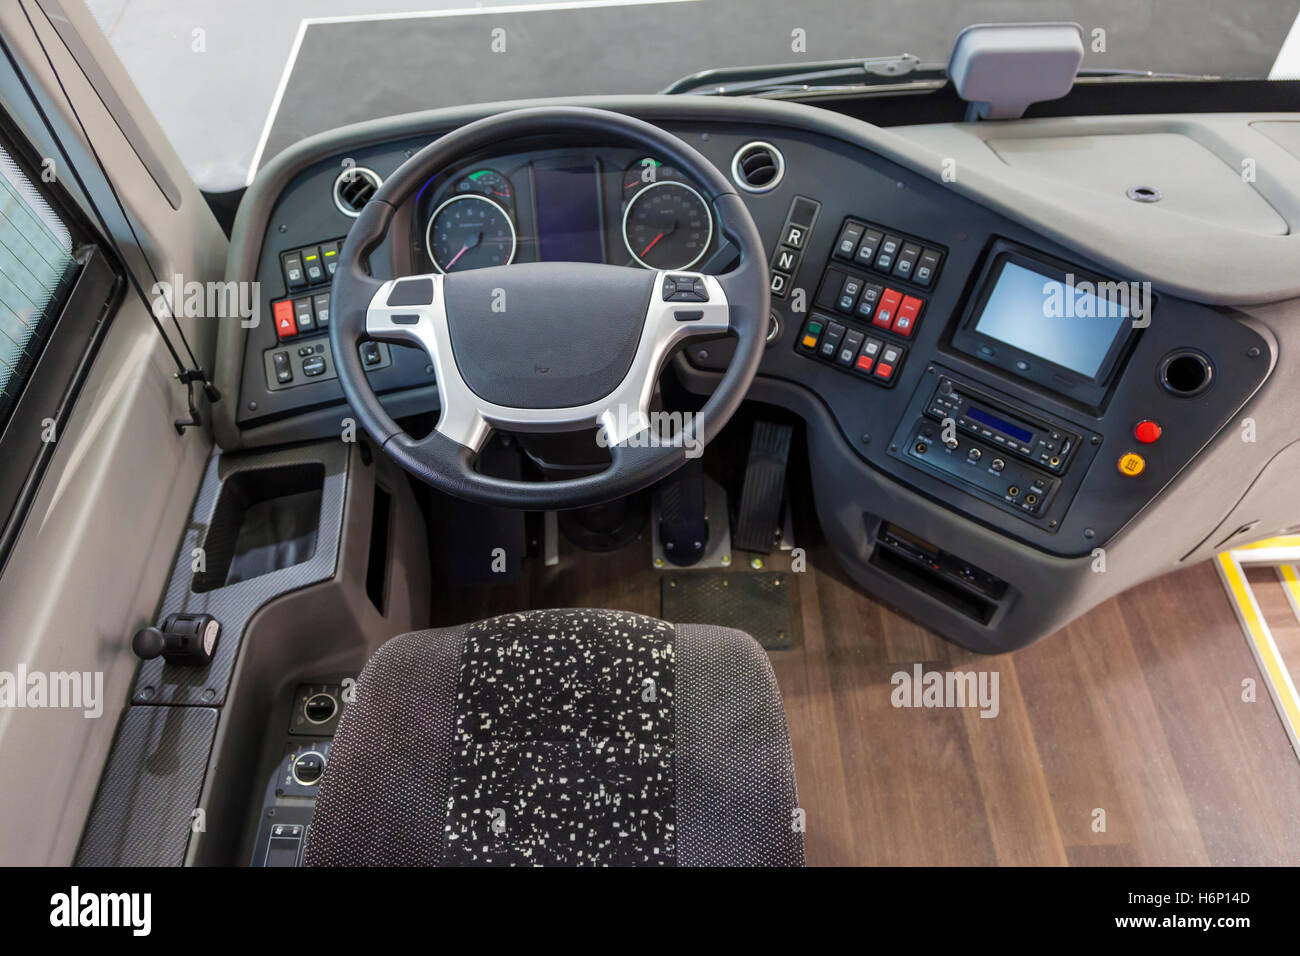 Dashboard of a modern truck - Stock Image